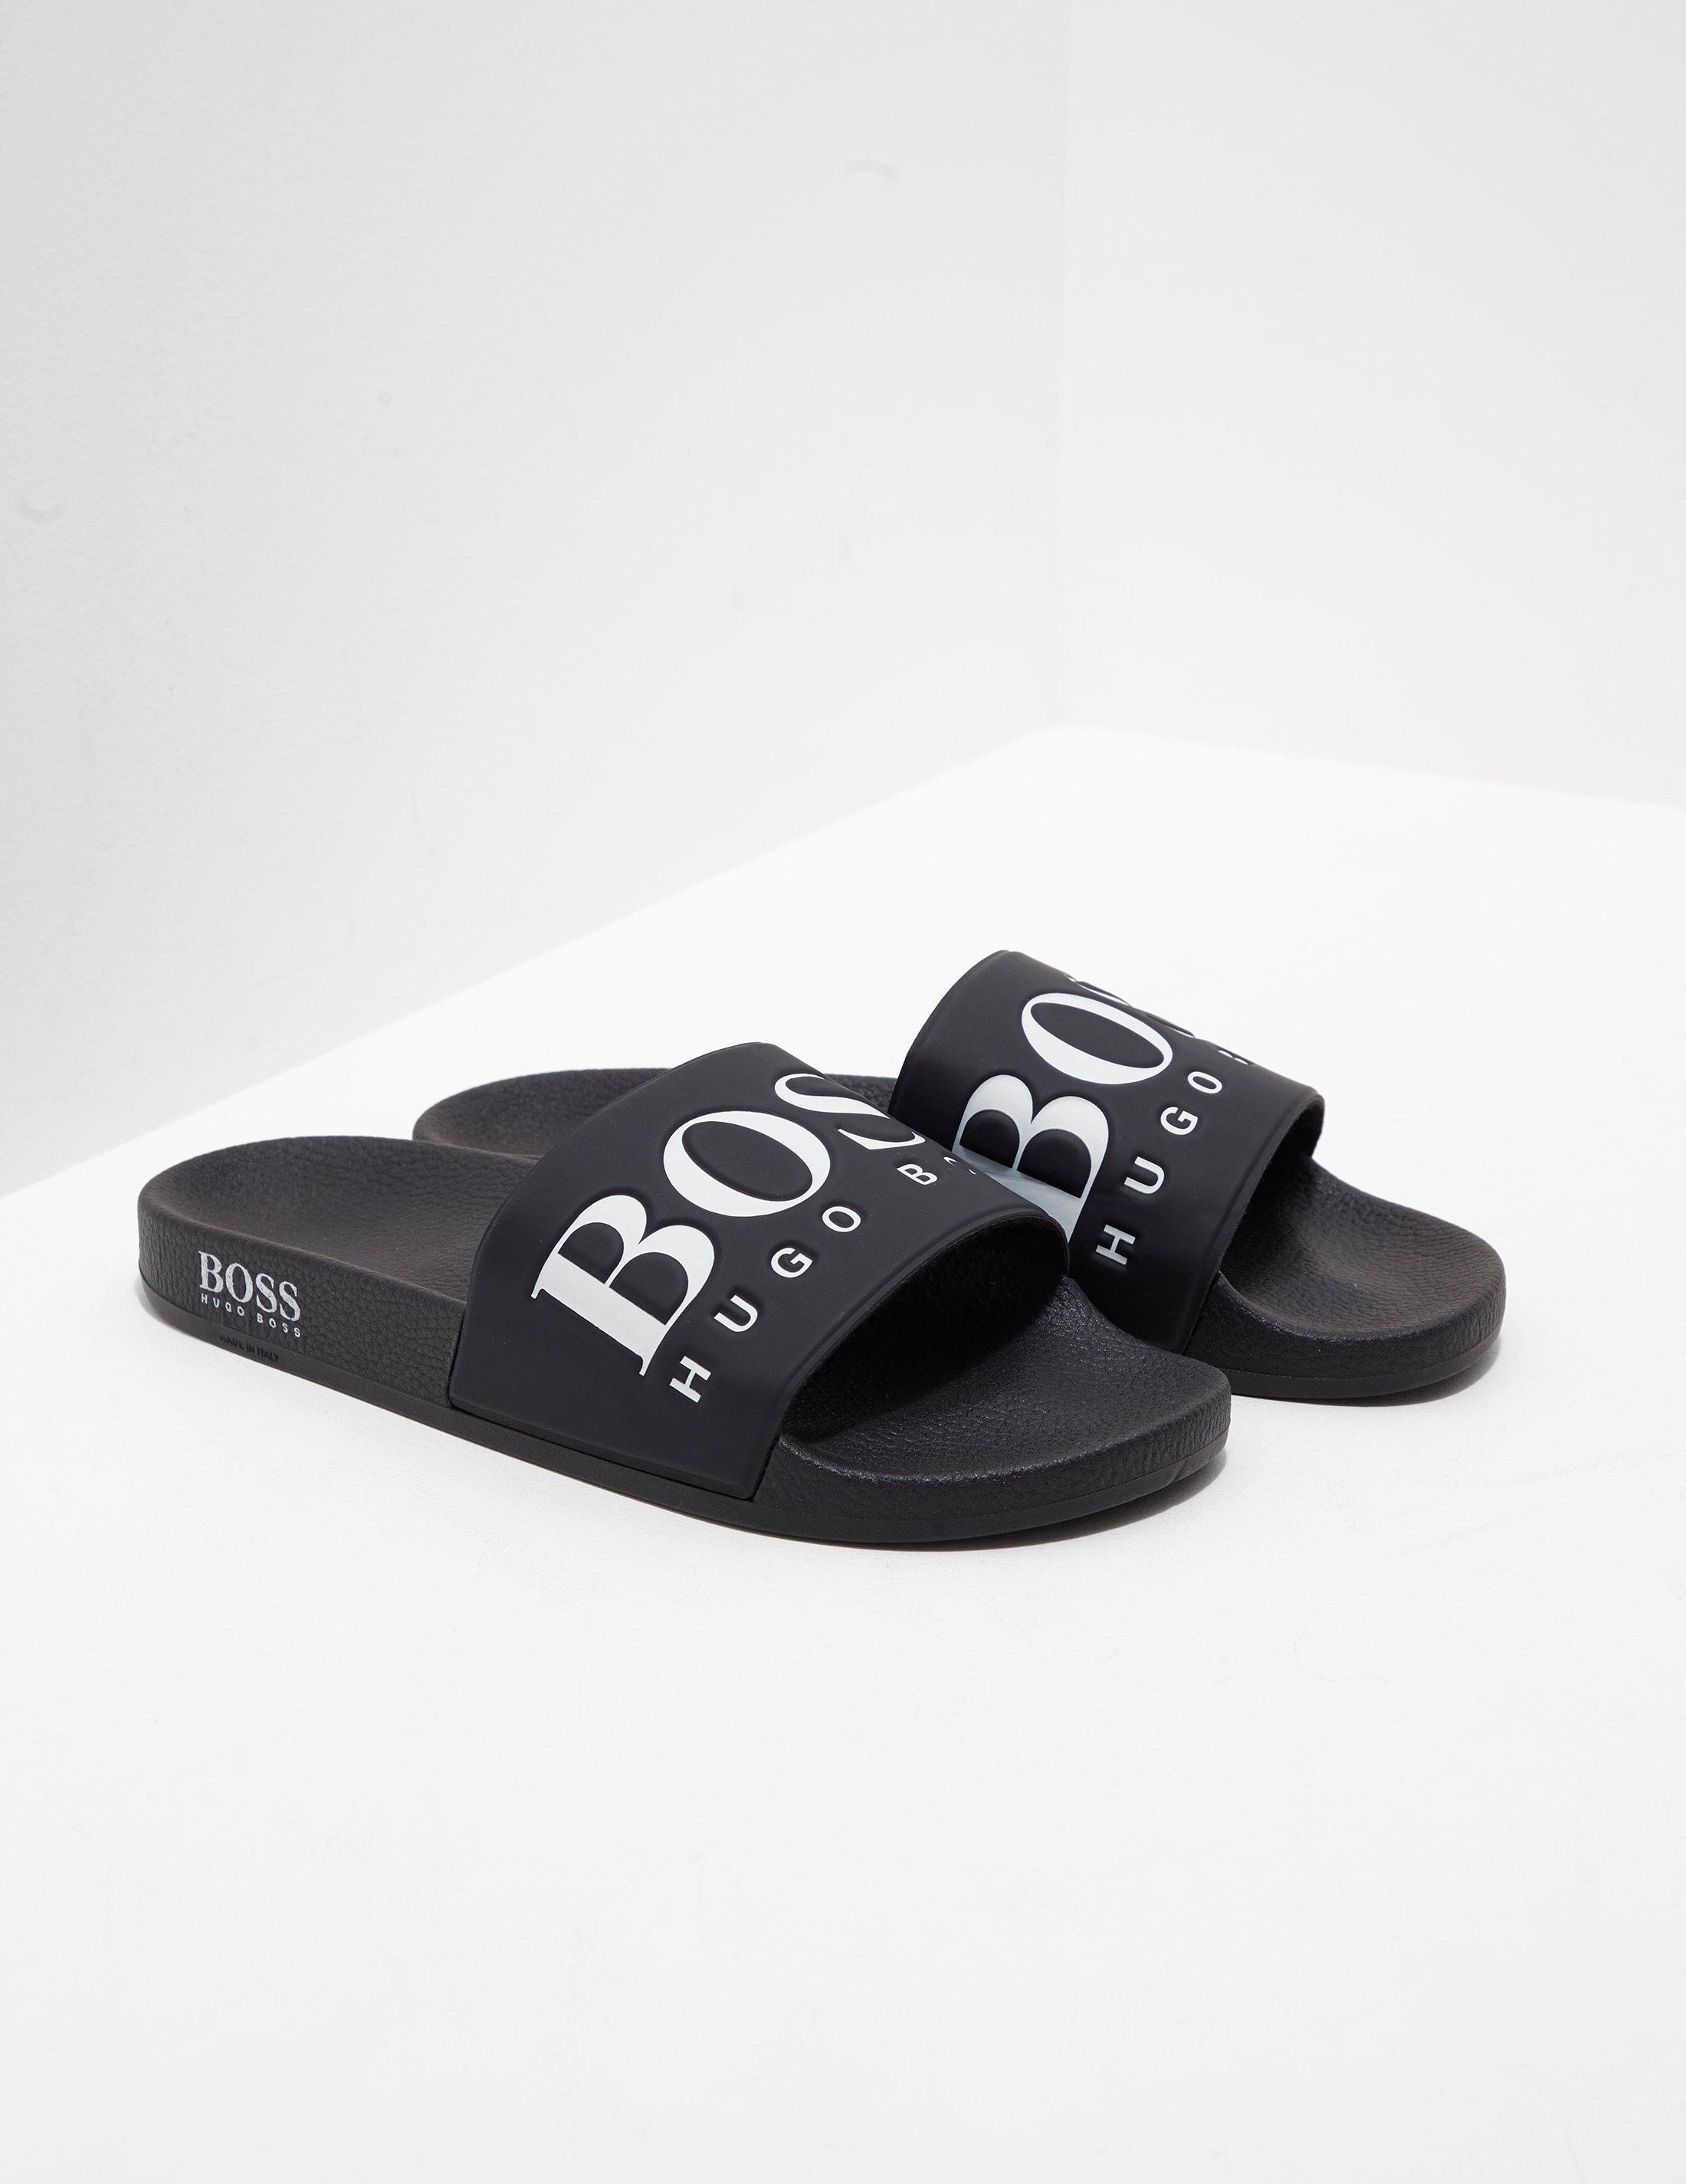 d0f0d7a0d42ae4 ... Solar Slides - Exclusively To Tessuti Black for Men - Lyst. View  fullscreen